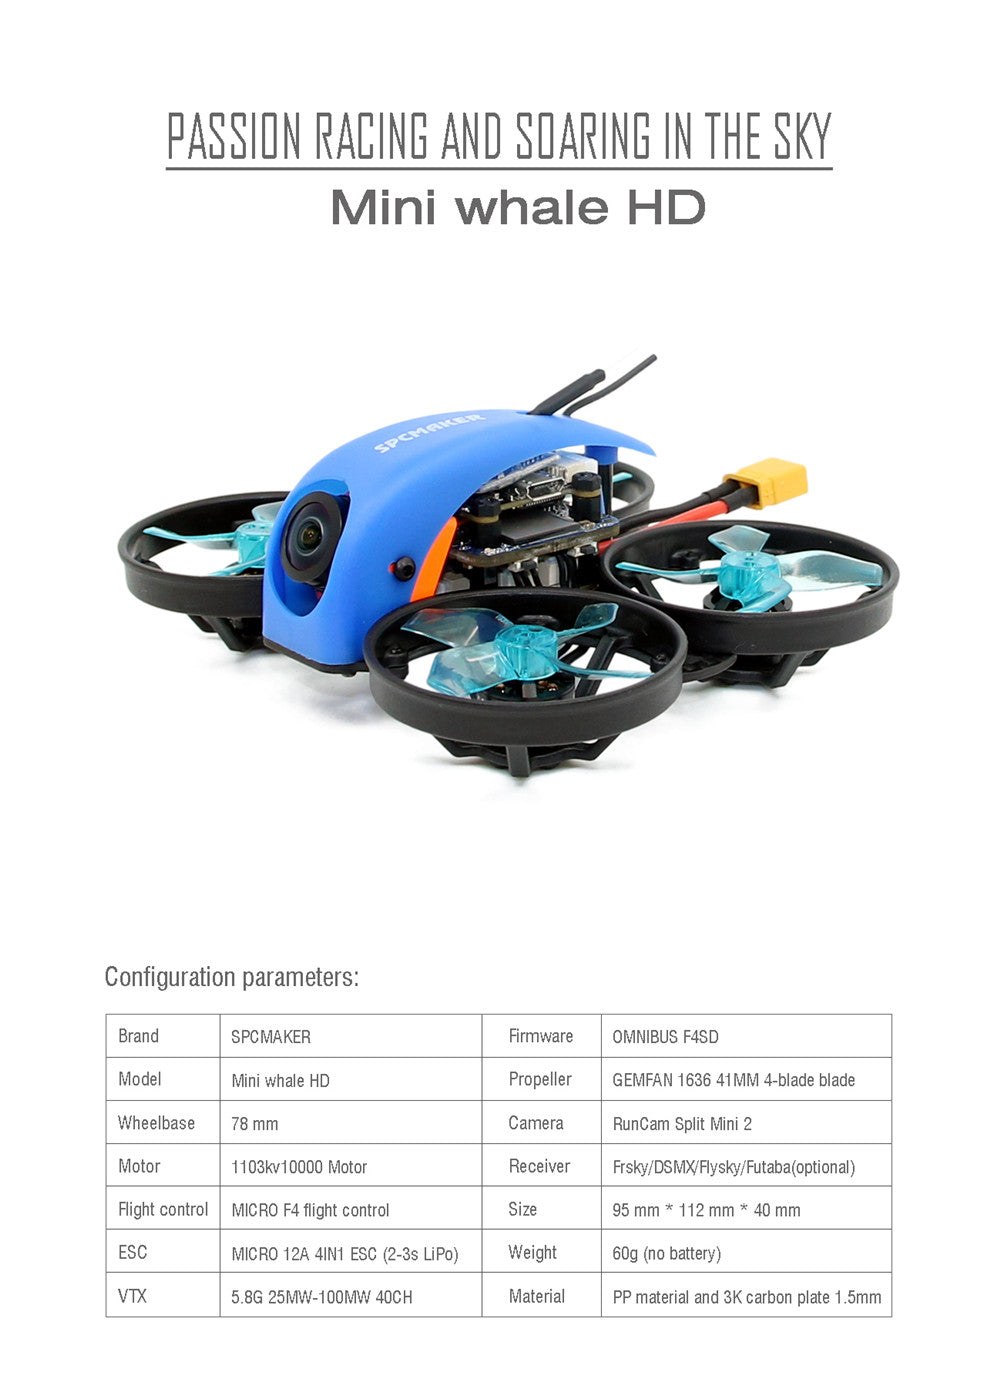 SPC Maker Mini Whale HD 78mm Micro F4 Cinewhoop FPV Racing Drone PNP BNF w/ 25/100mW VTX Runcam Split Mini 2